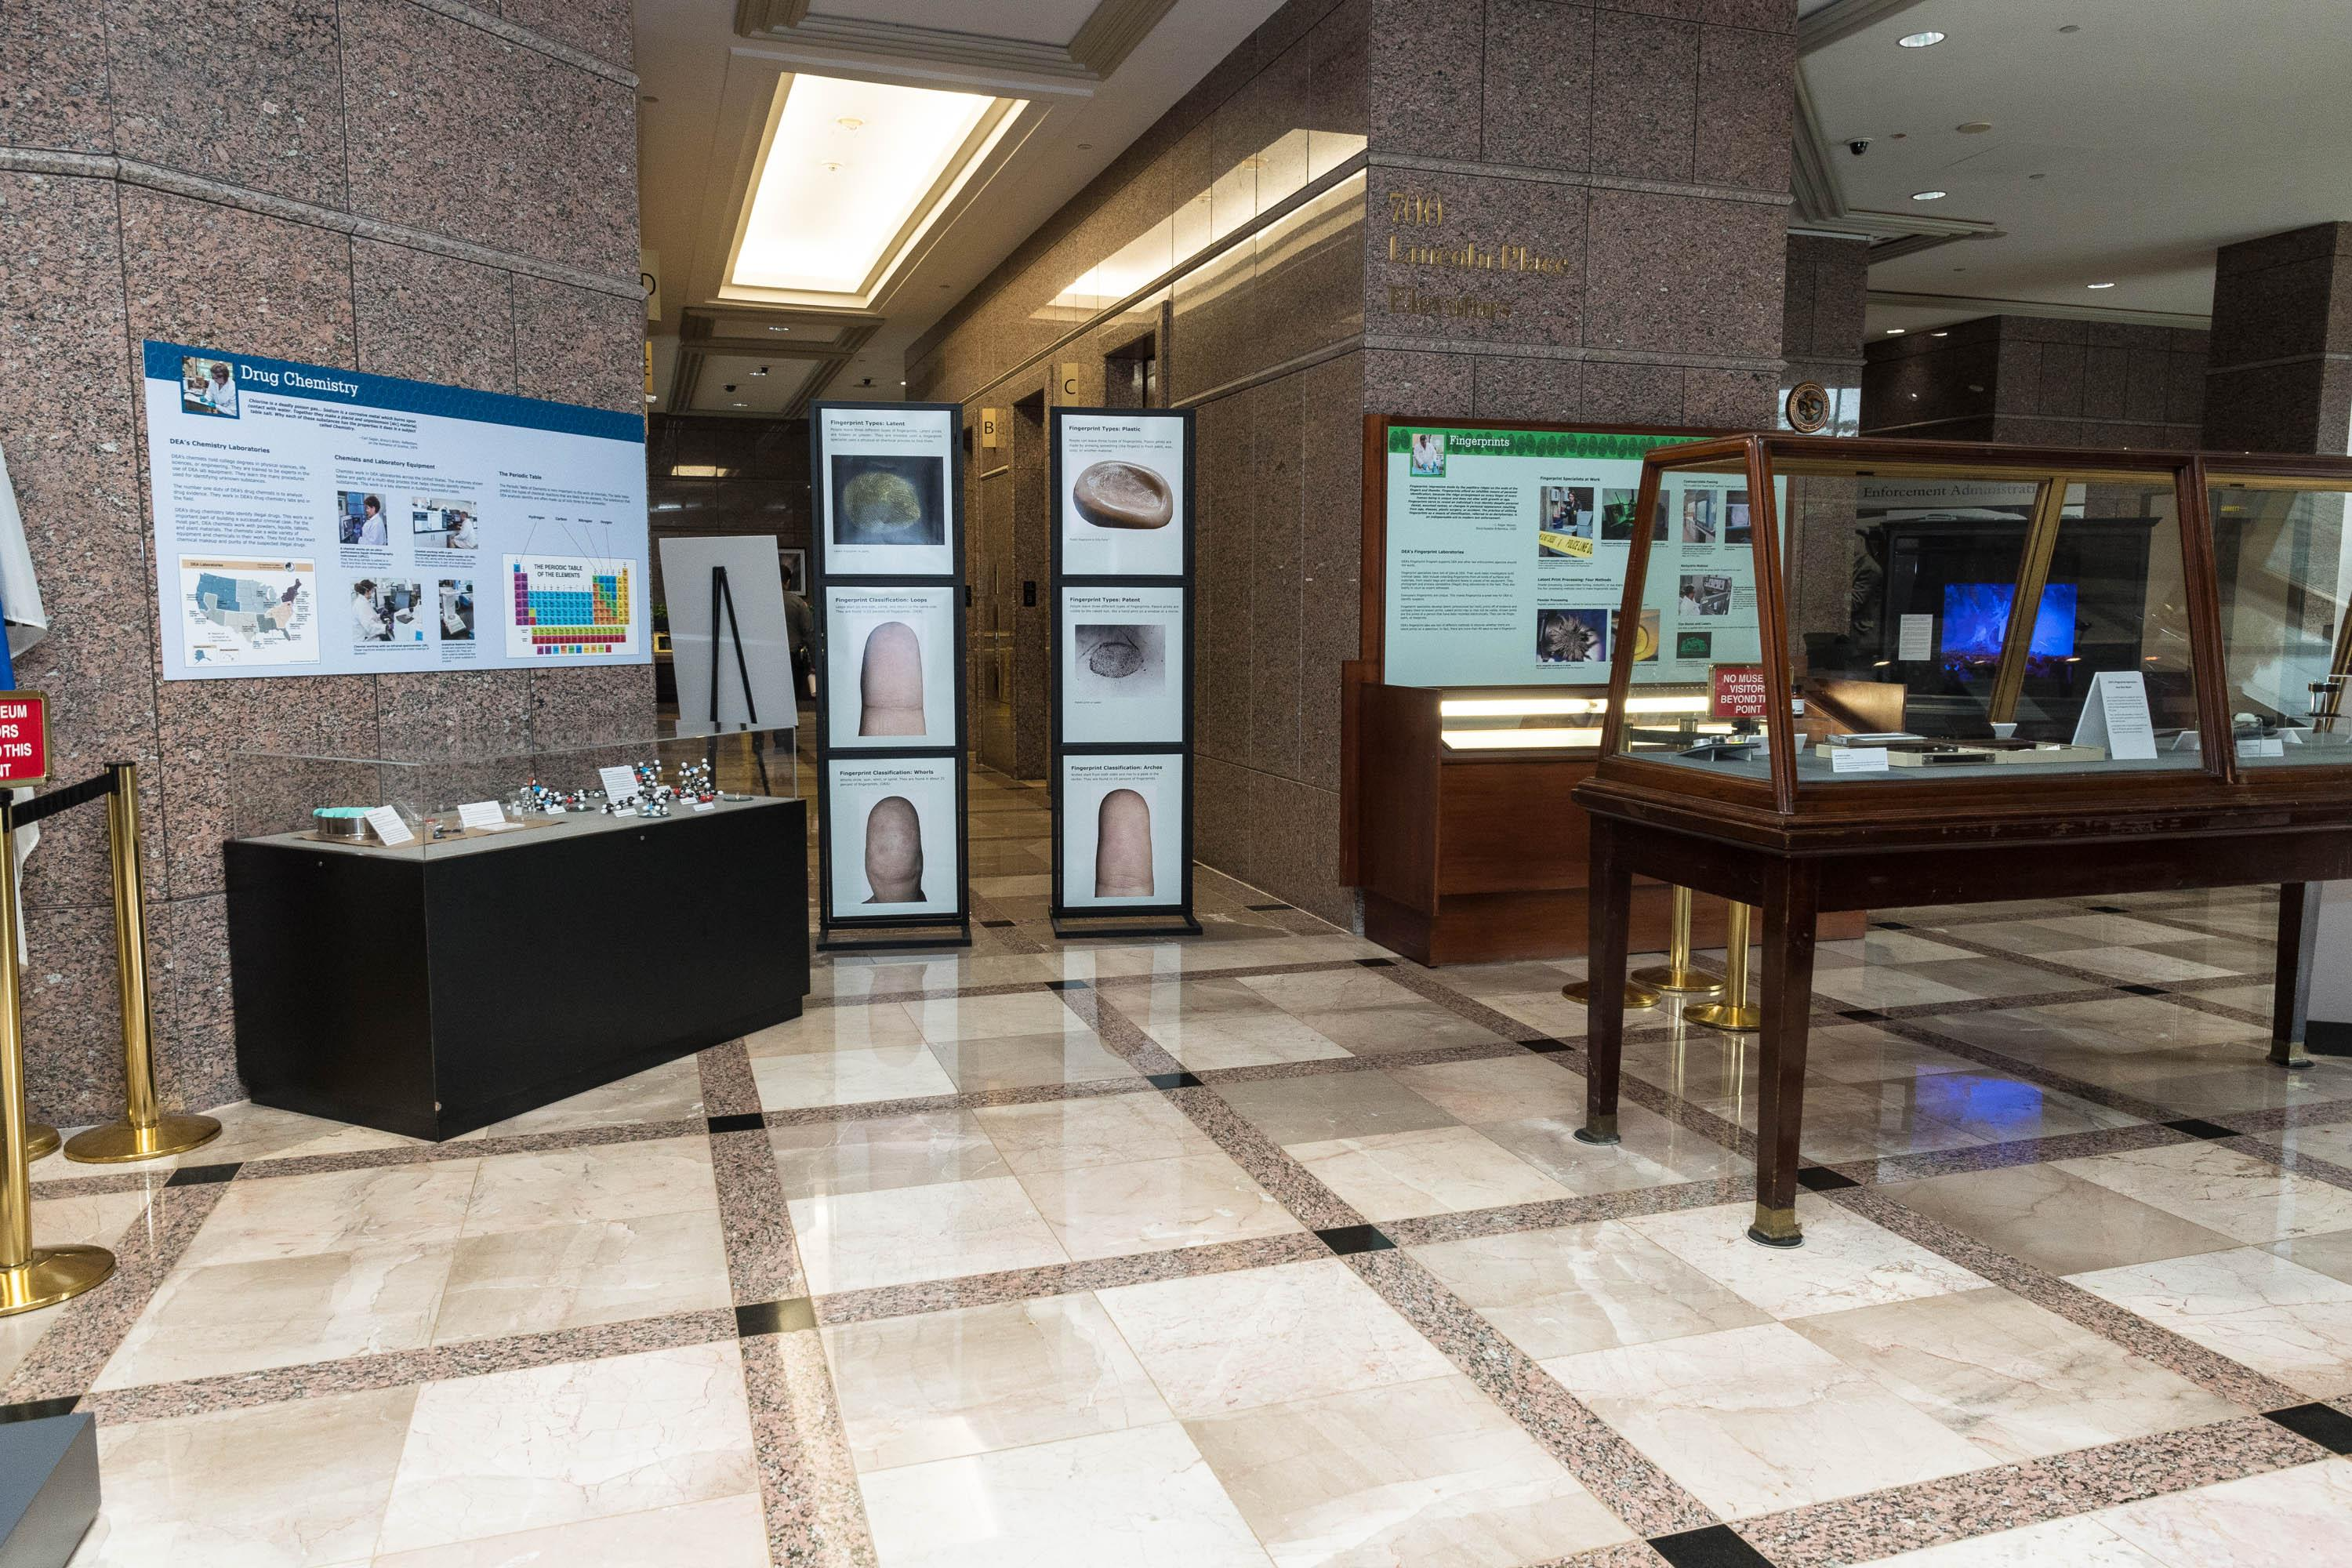 DEA Forensic Science lobby exhibit